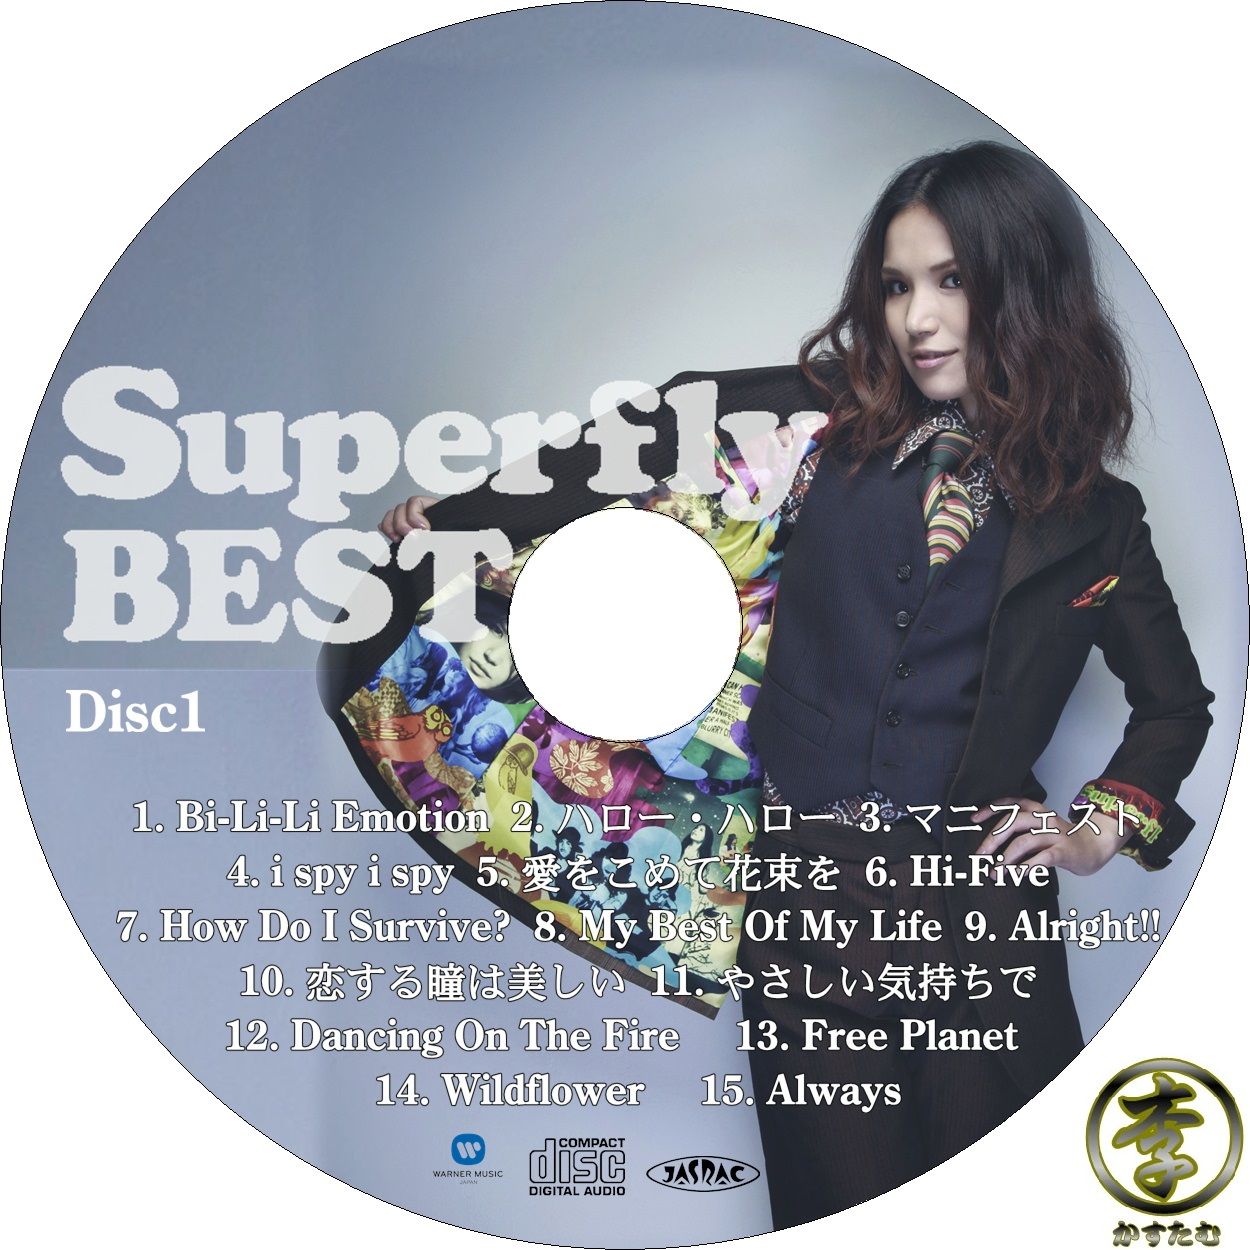 Images of Superfly BEST - JapaneseClass.jp